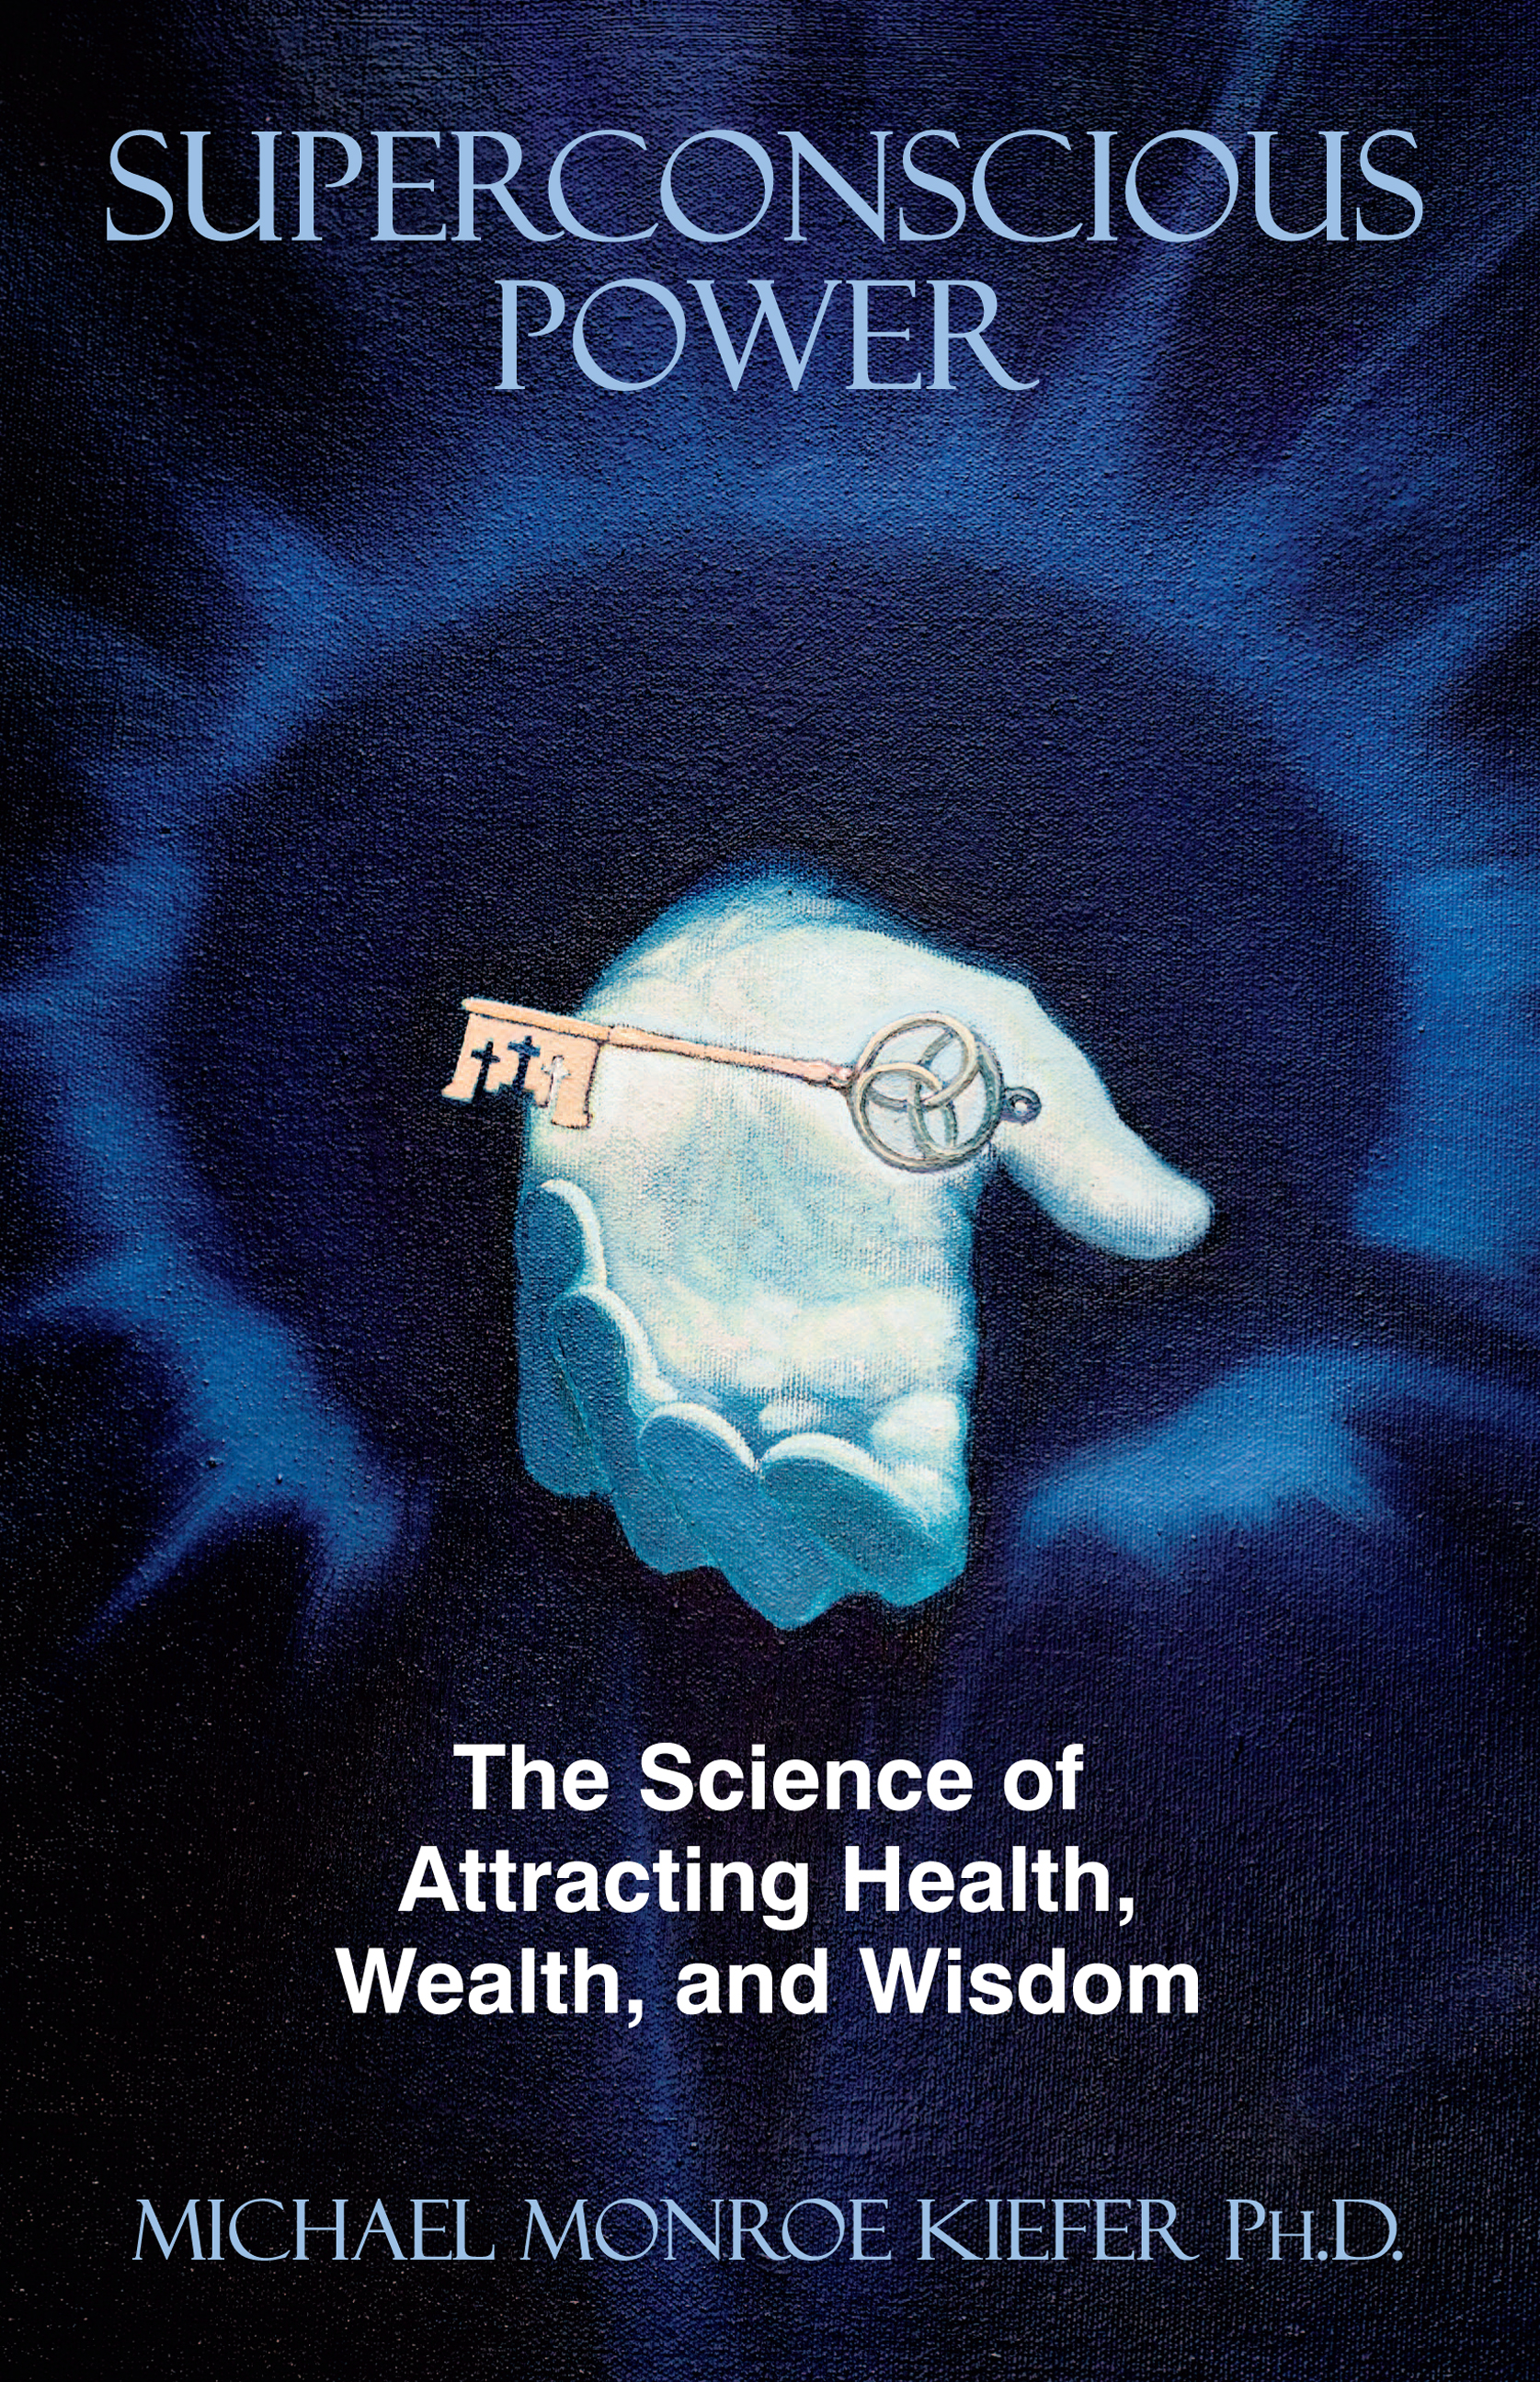 Superconscious Power - The Science of Attracting Health, Wealth, and  Wisdom, an Ebook by Dr  Michael Monroe Kiefer